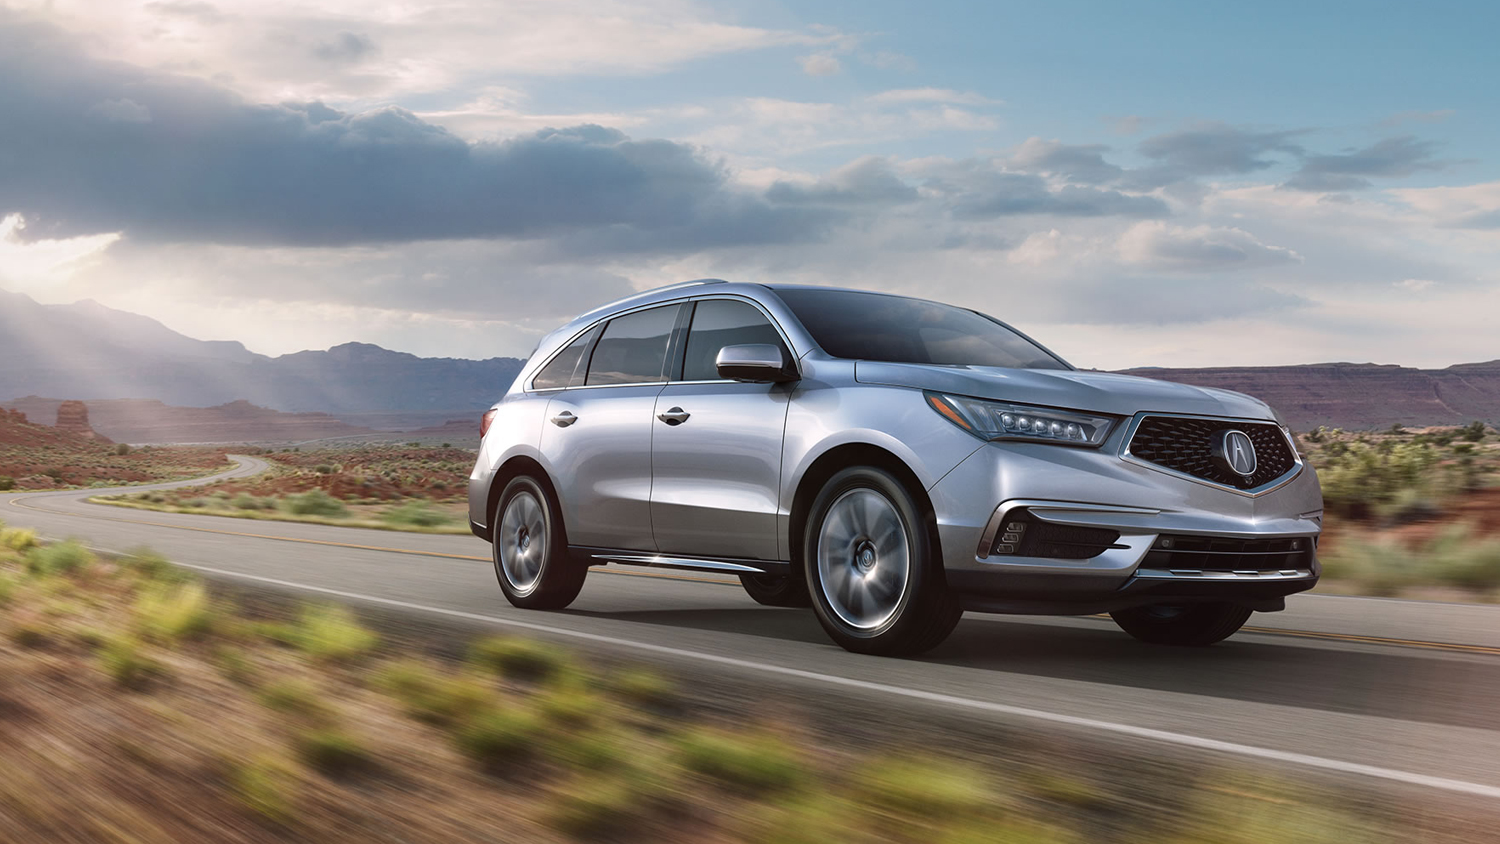 luxury drive mdx desert suv wisconsin in acura small suvs dealers exterior